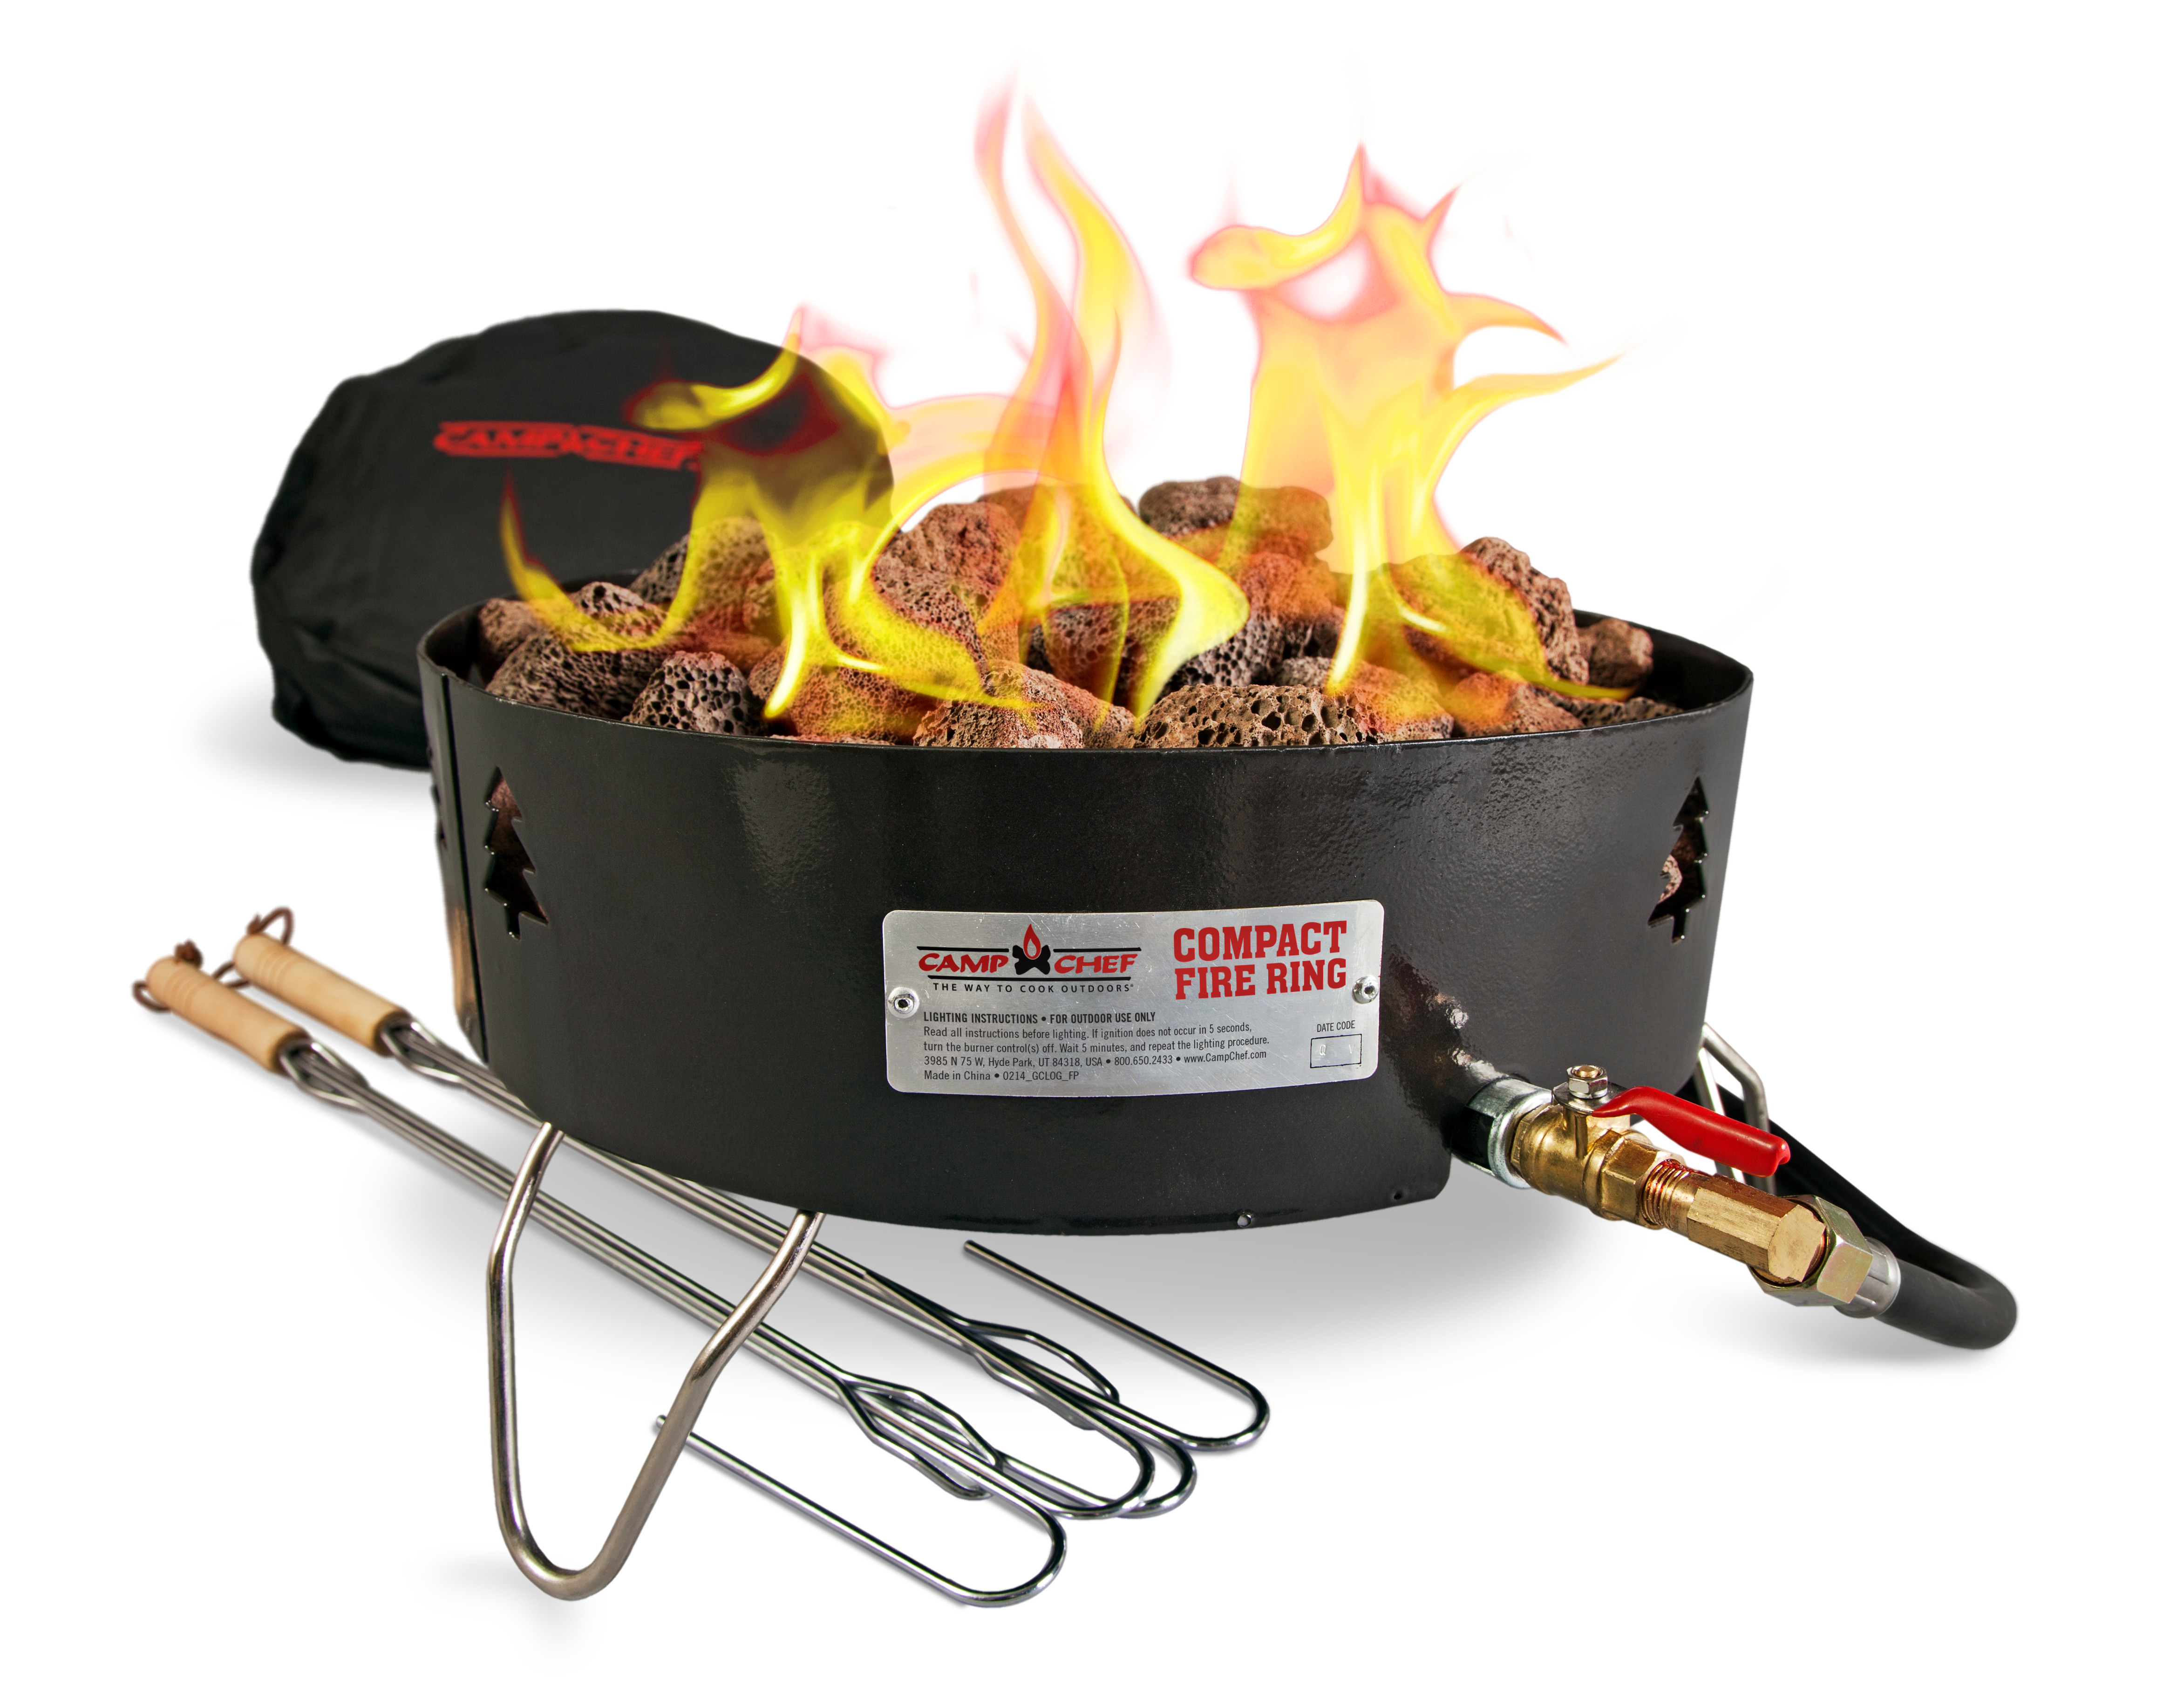 Camp Chef Campfire Pit Portablepropane Gc Log Walmart with proportions 4689 X 3634